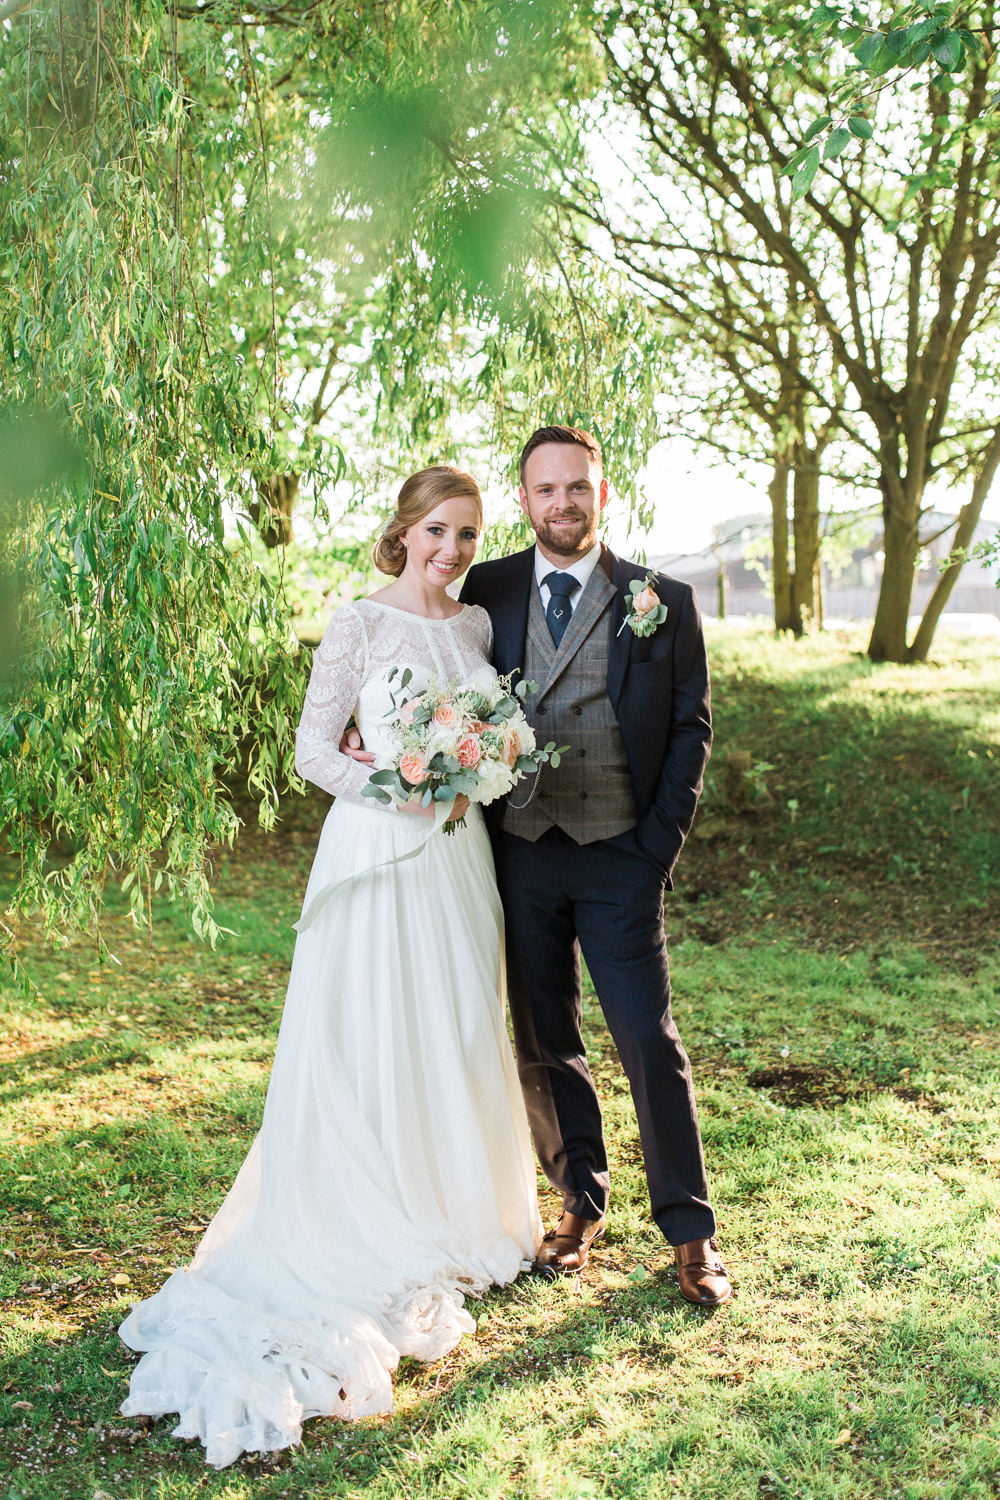 Bride Bridal Maggie Sottero Lace Long Sleeves A Line Navy Suit Groom Peach Rose Peony Eucalyptus Bouquet Tweed Waistcoat Moreves Barn Wedding Gemma Giorgio Photography